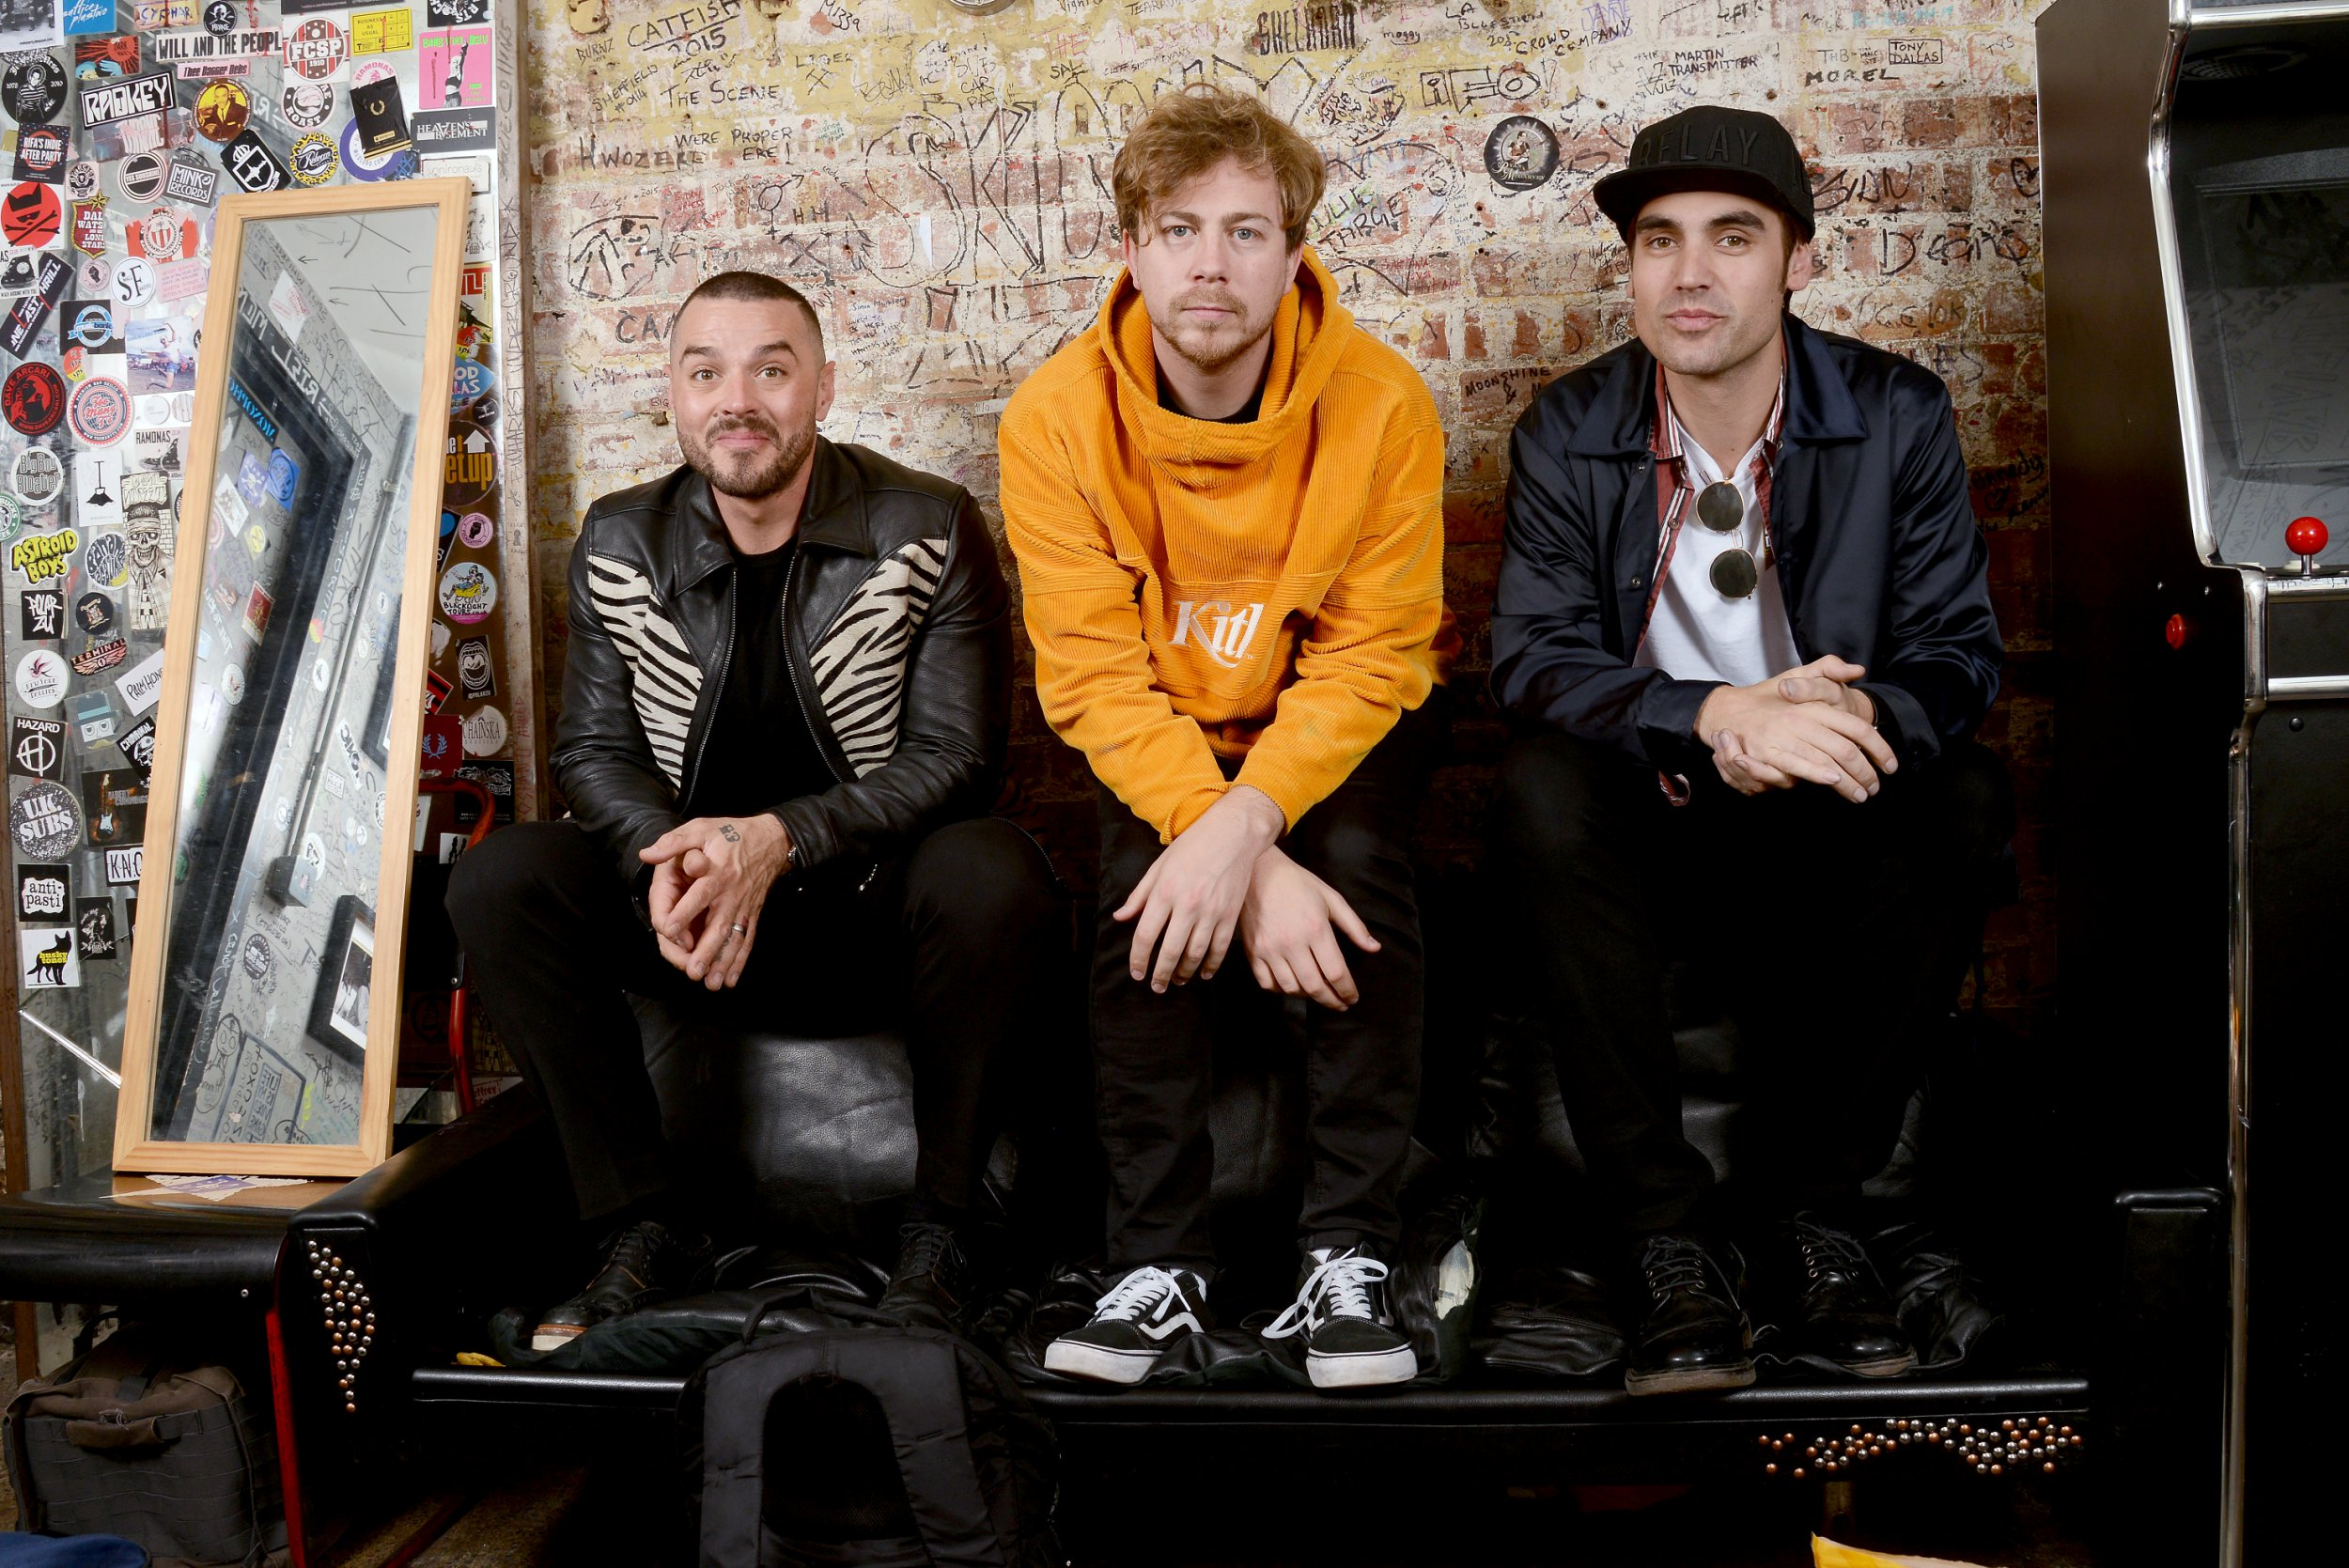 LONDON, ENGLAND - OCTOBER 29: (L-R) Matt Willis, James Bourne and Charlie Simpson of Busted backstage ahead of playing their smallest gig ever at The 100 Club on October 29, 2018 in London, England. (Photo by Dave J Hogan/Dave J Hogan/Getty Images for Warner Music)